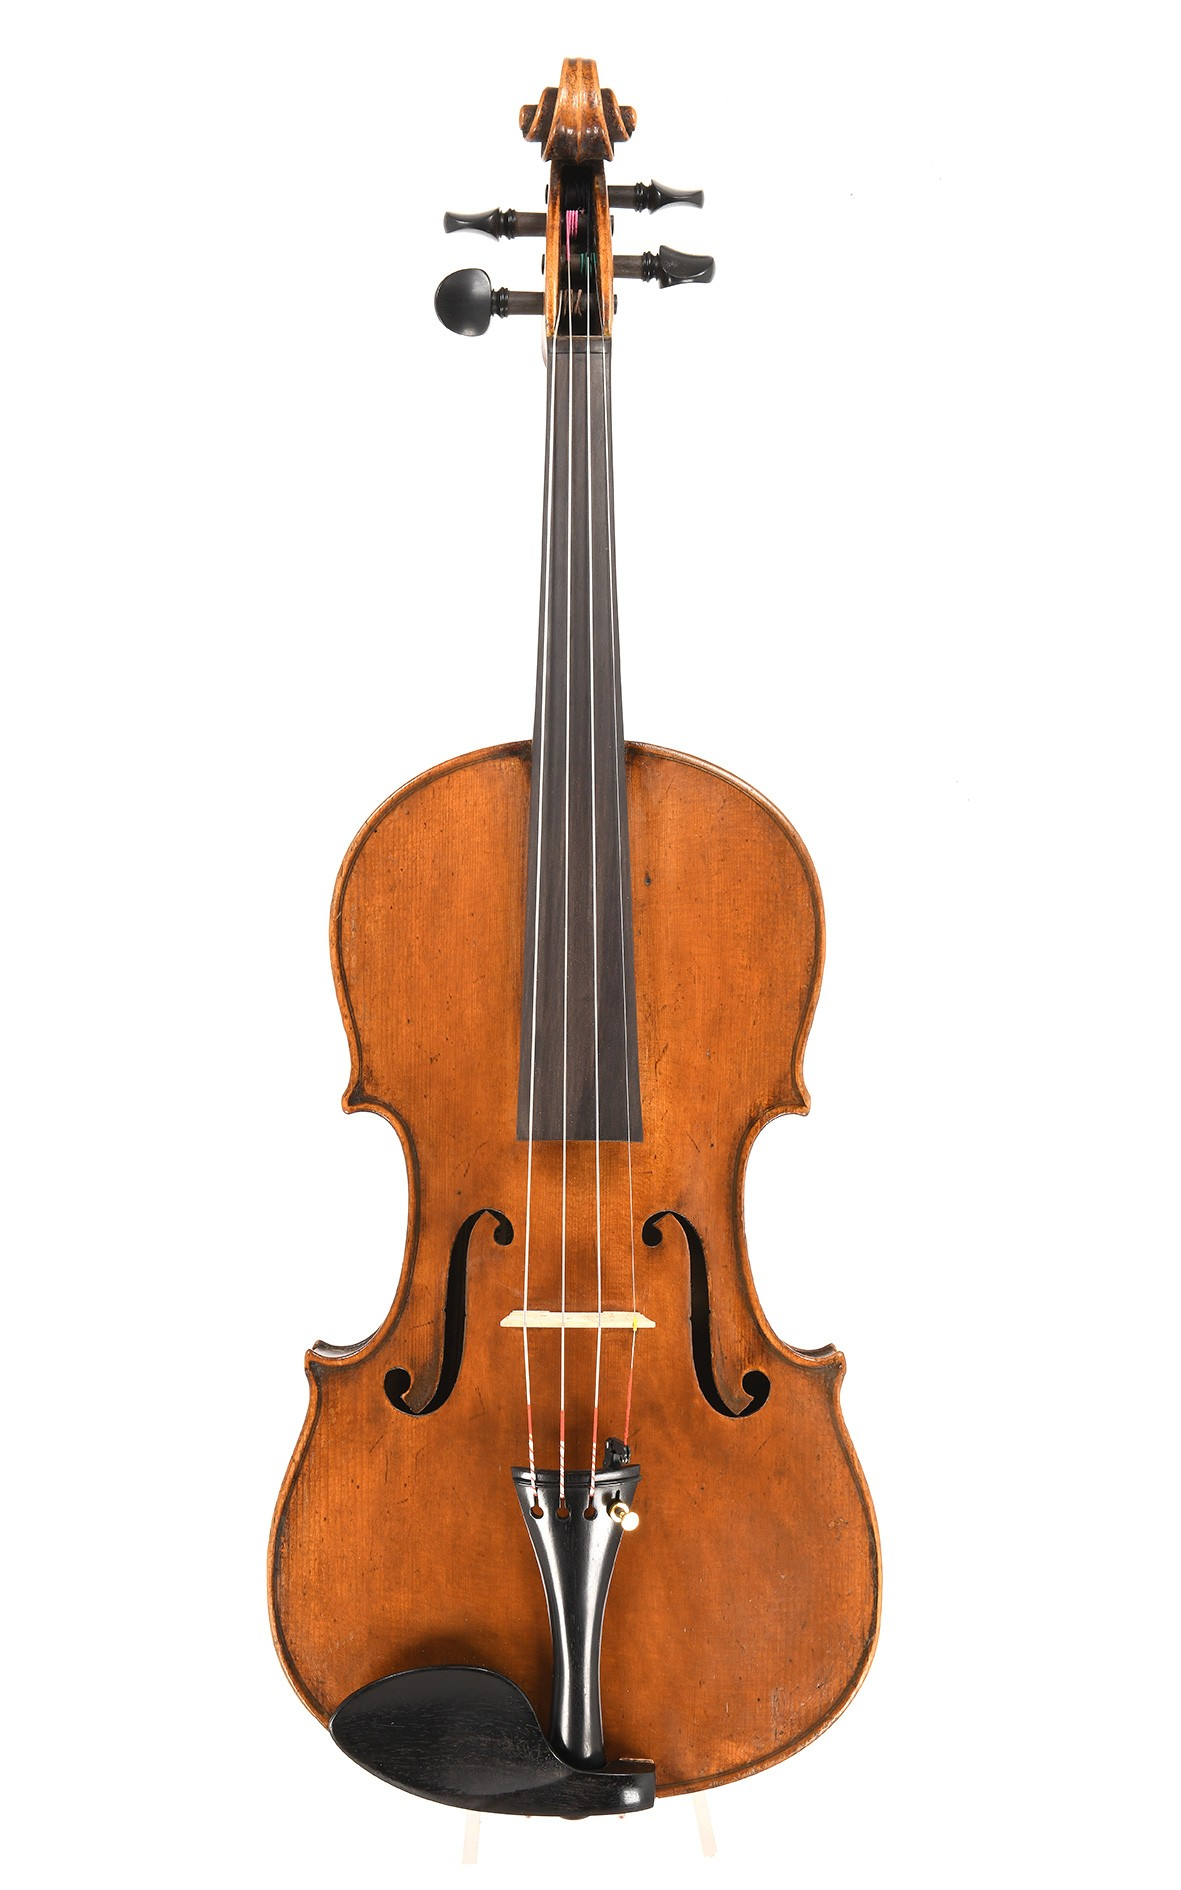 Markneukirchen violin by Hermann Dölling jr.